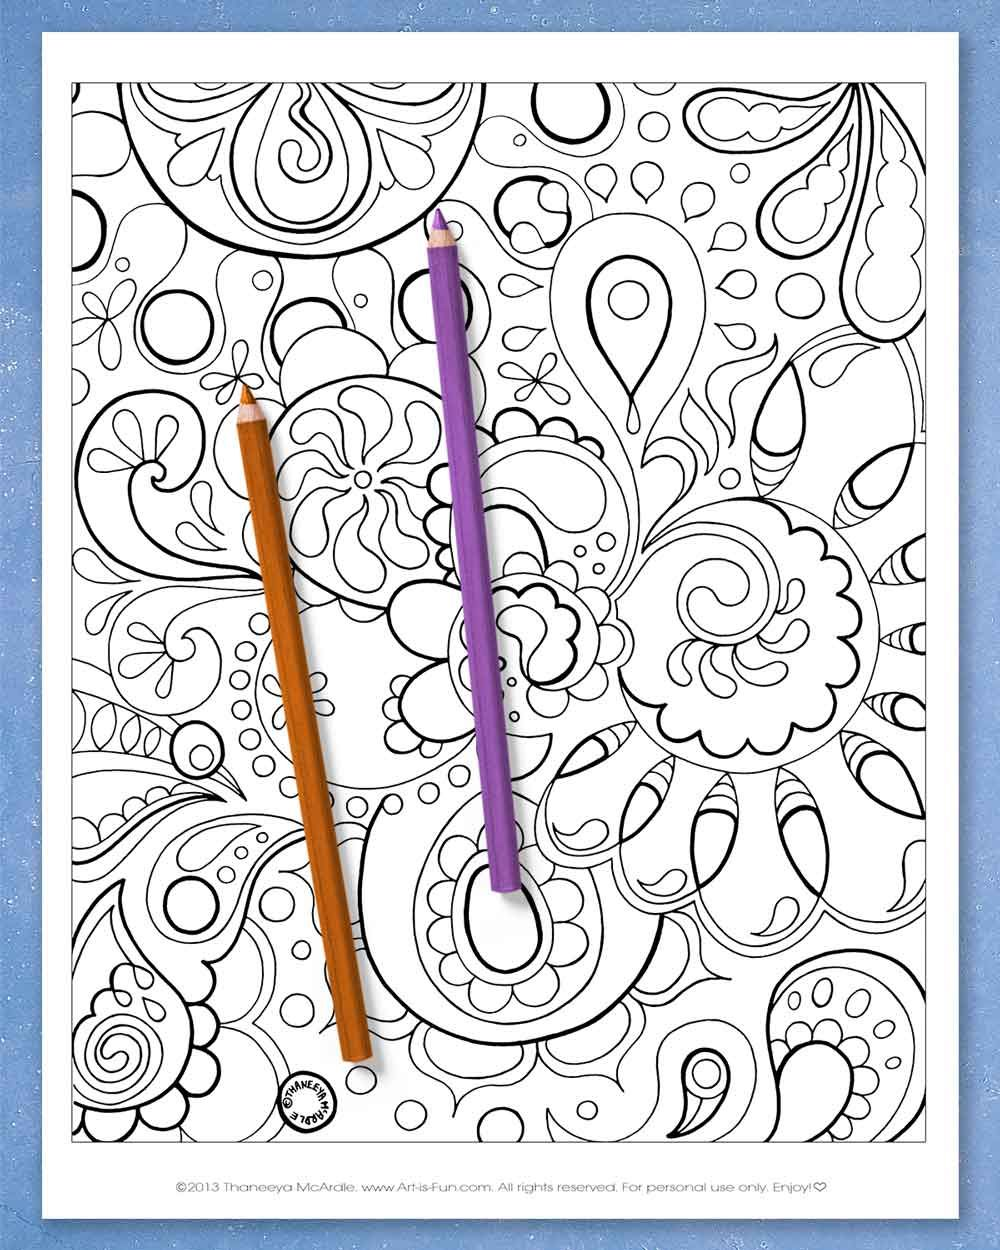 Abstract Coloring Pages Printable E Book Of Groovy Abstract Designs For You To Color Art Is Fun Abstract Coloring Pages Coloring Pages Printable Coloring Book